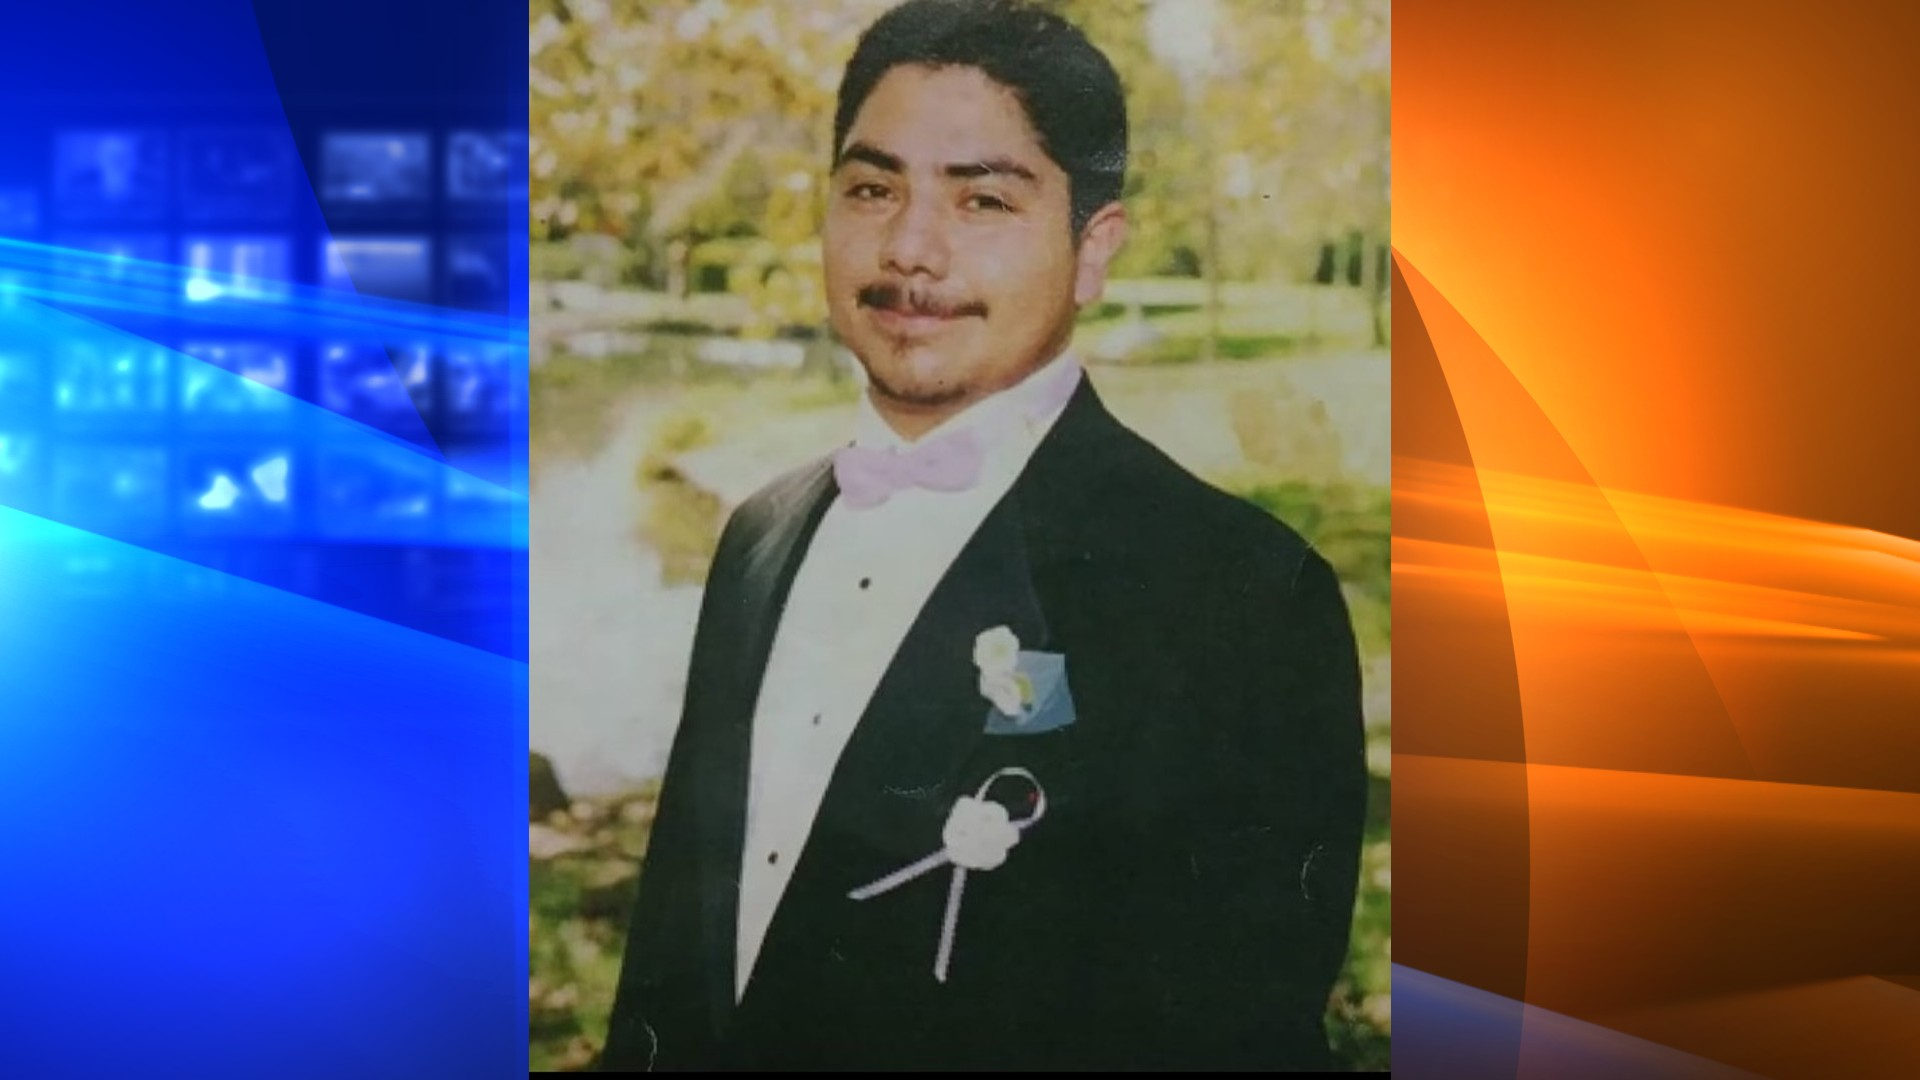 Sergio Hernandez is seen in a photo released by the Santa Ana Police Department.